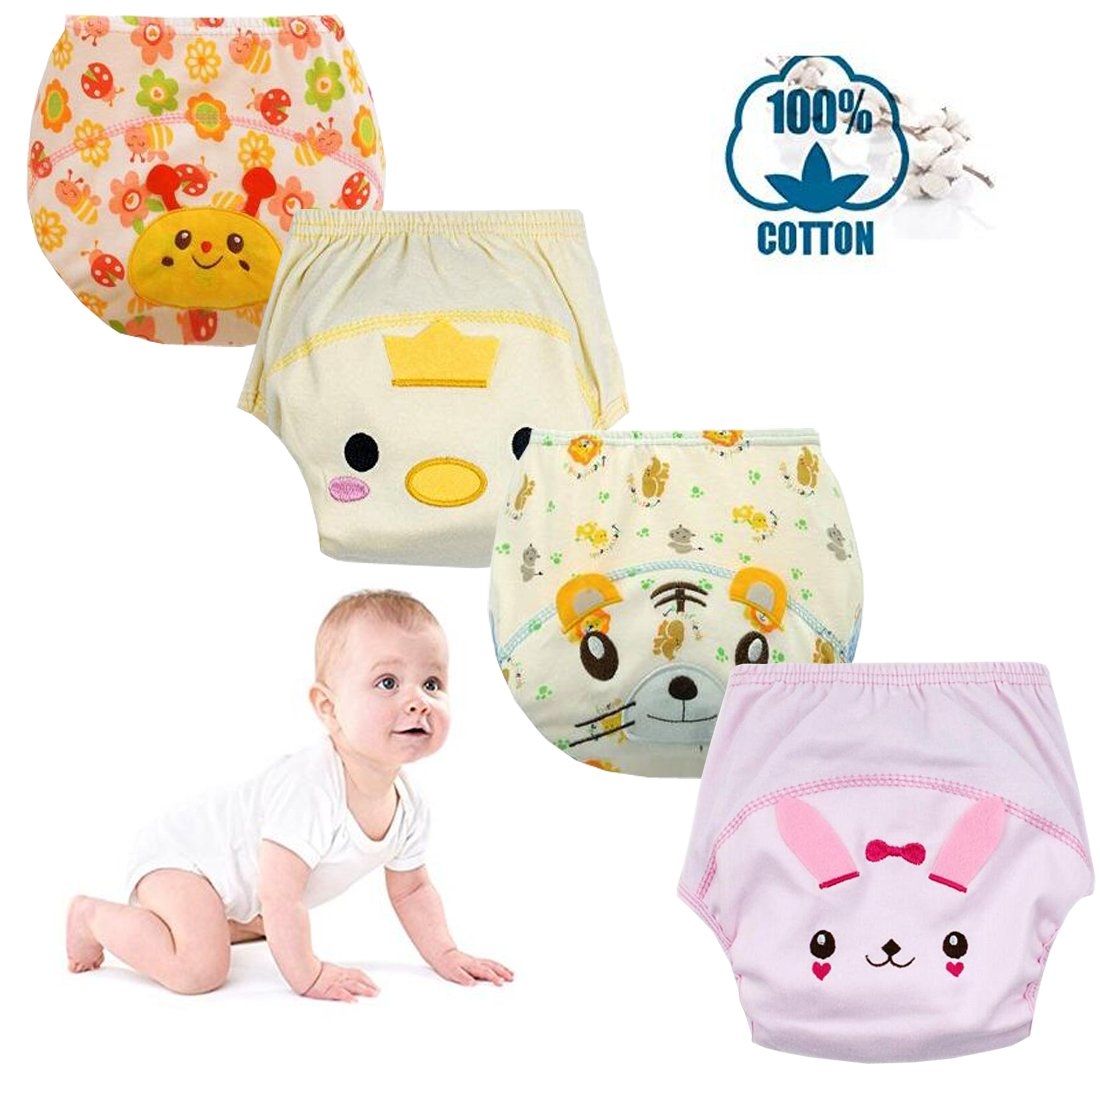 October Elf Unisex Baby Toddler Potty Training Pants Reusable Pack of 4